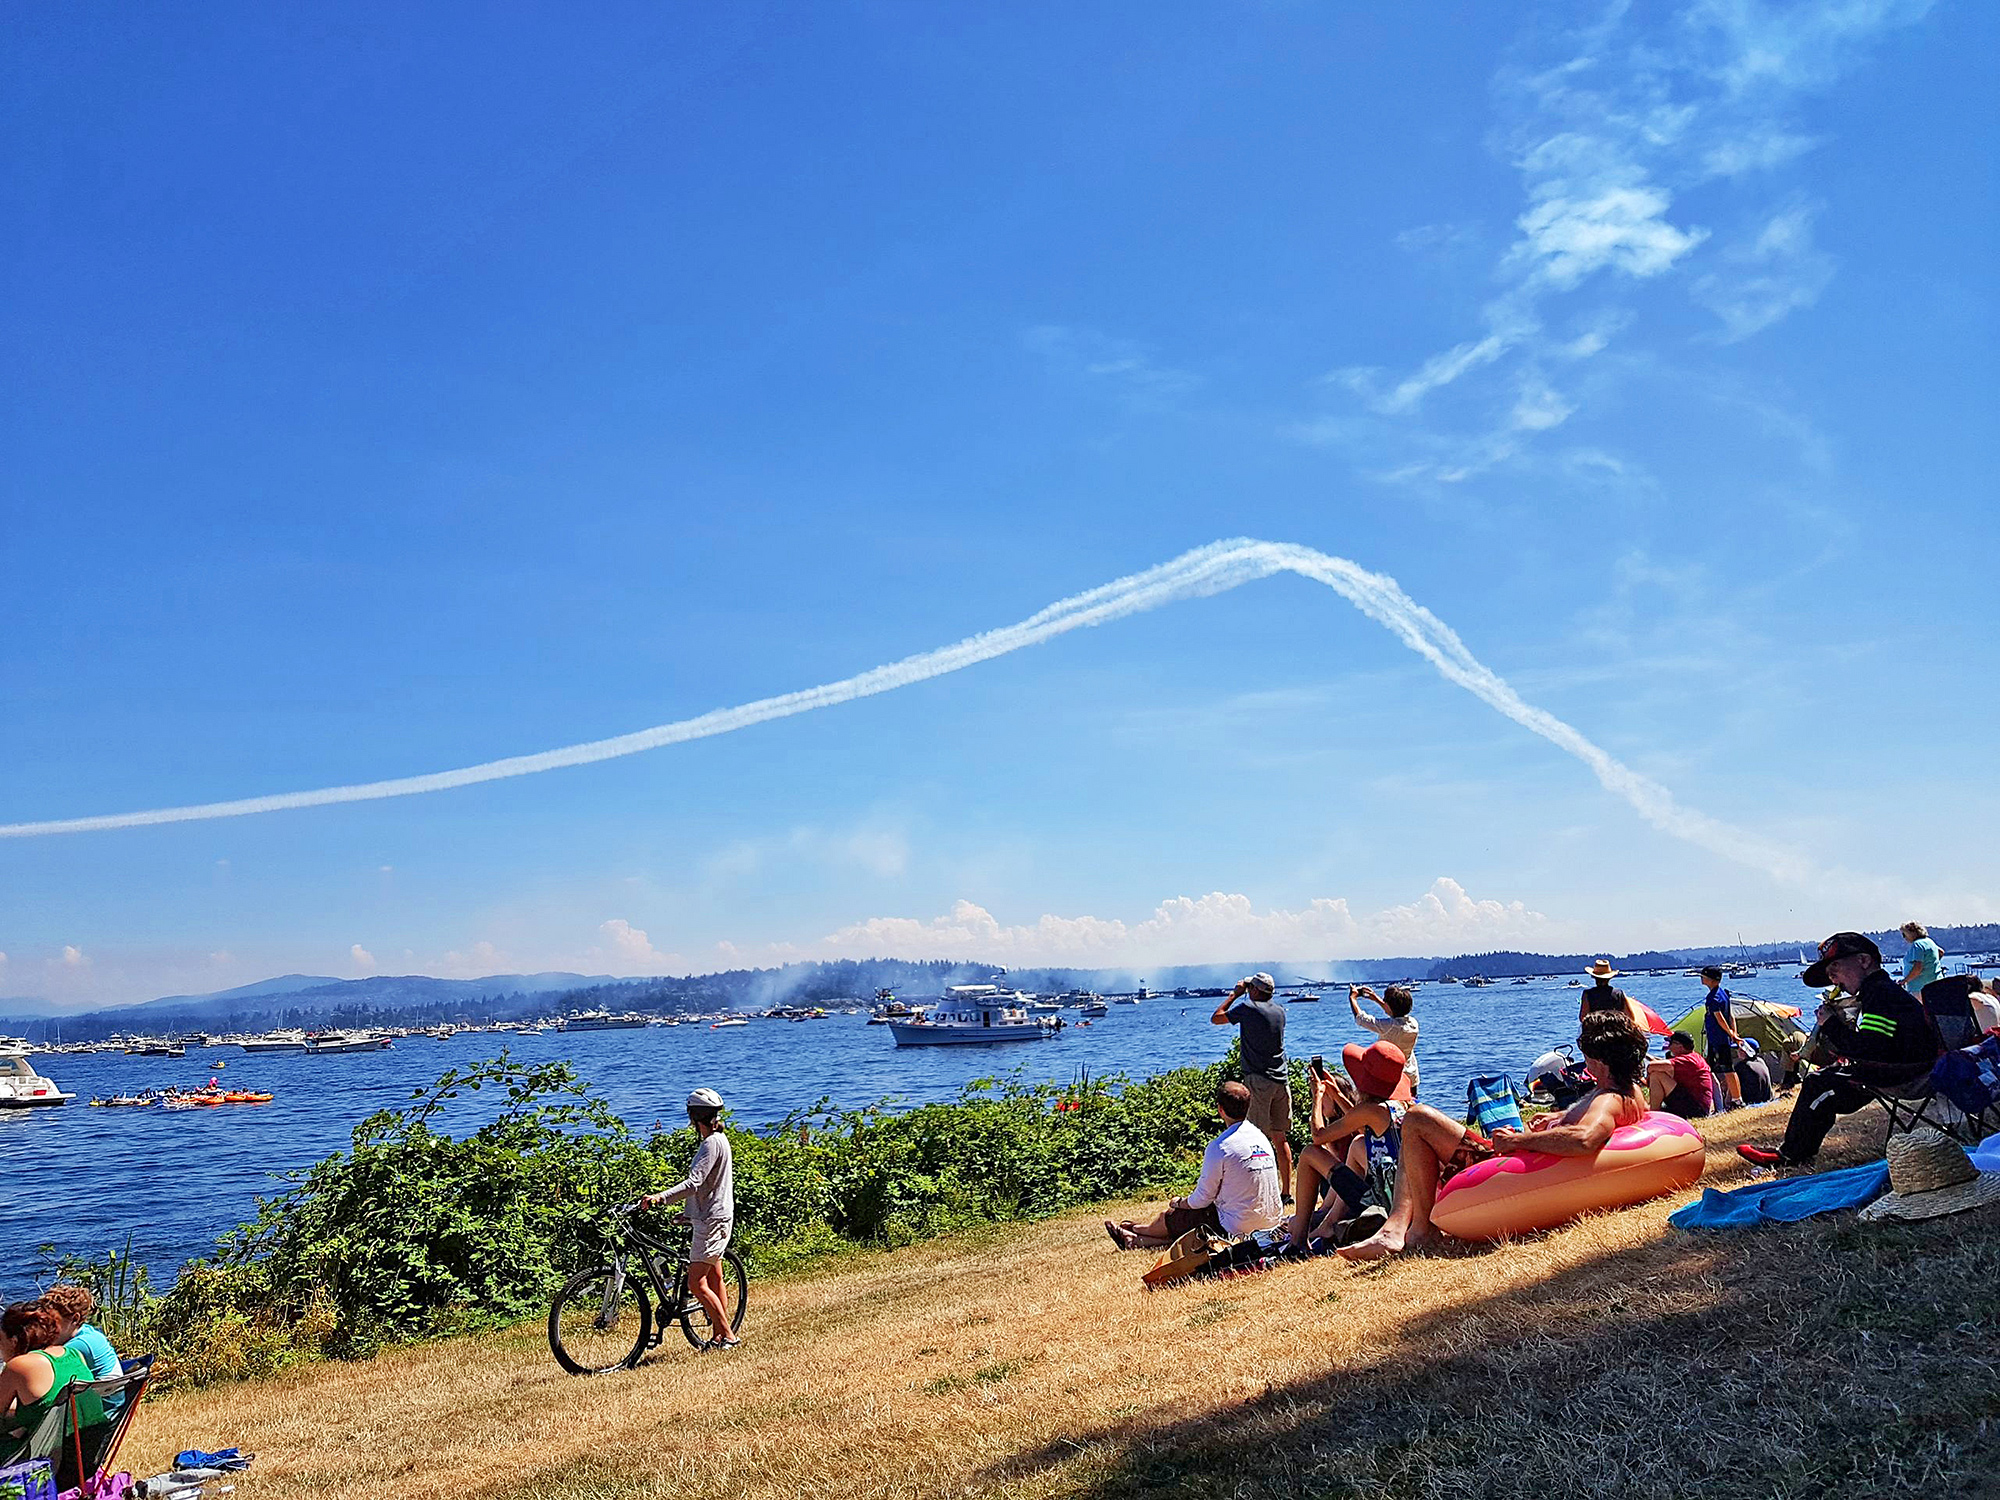 Seafair attendees at Lake Washington scan a blue sky filled with contrails for the Blue Angels